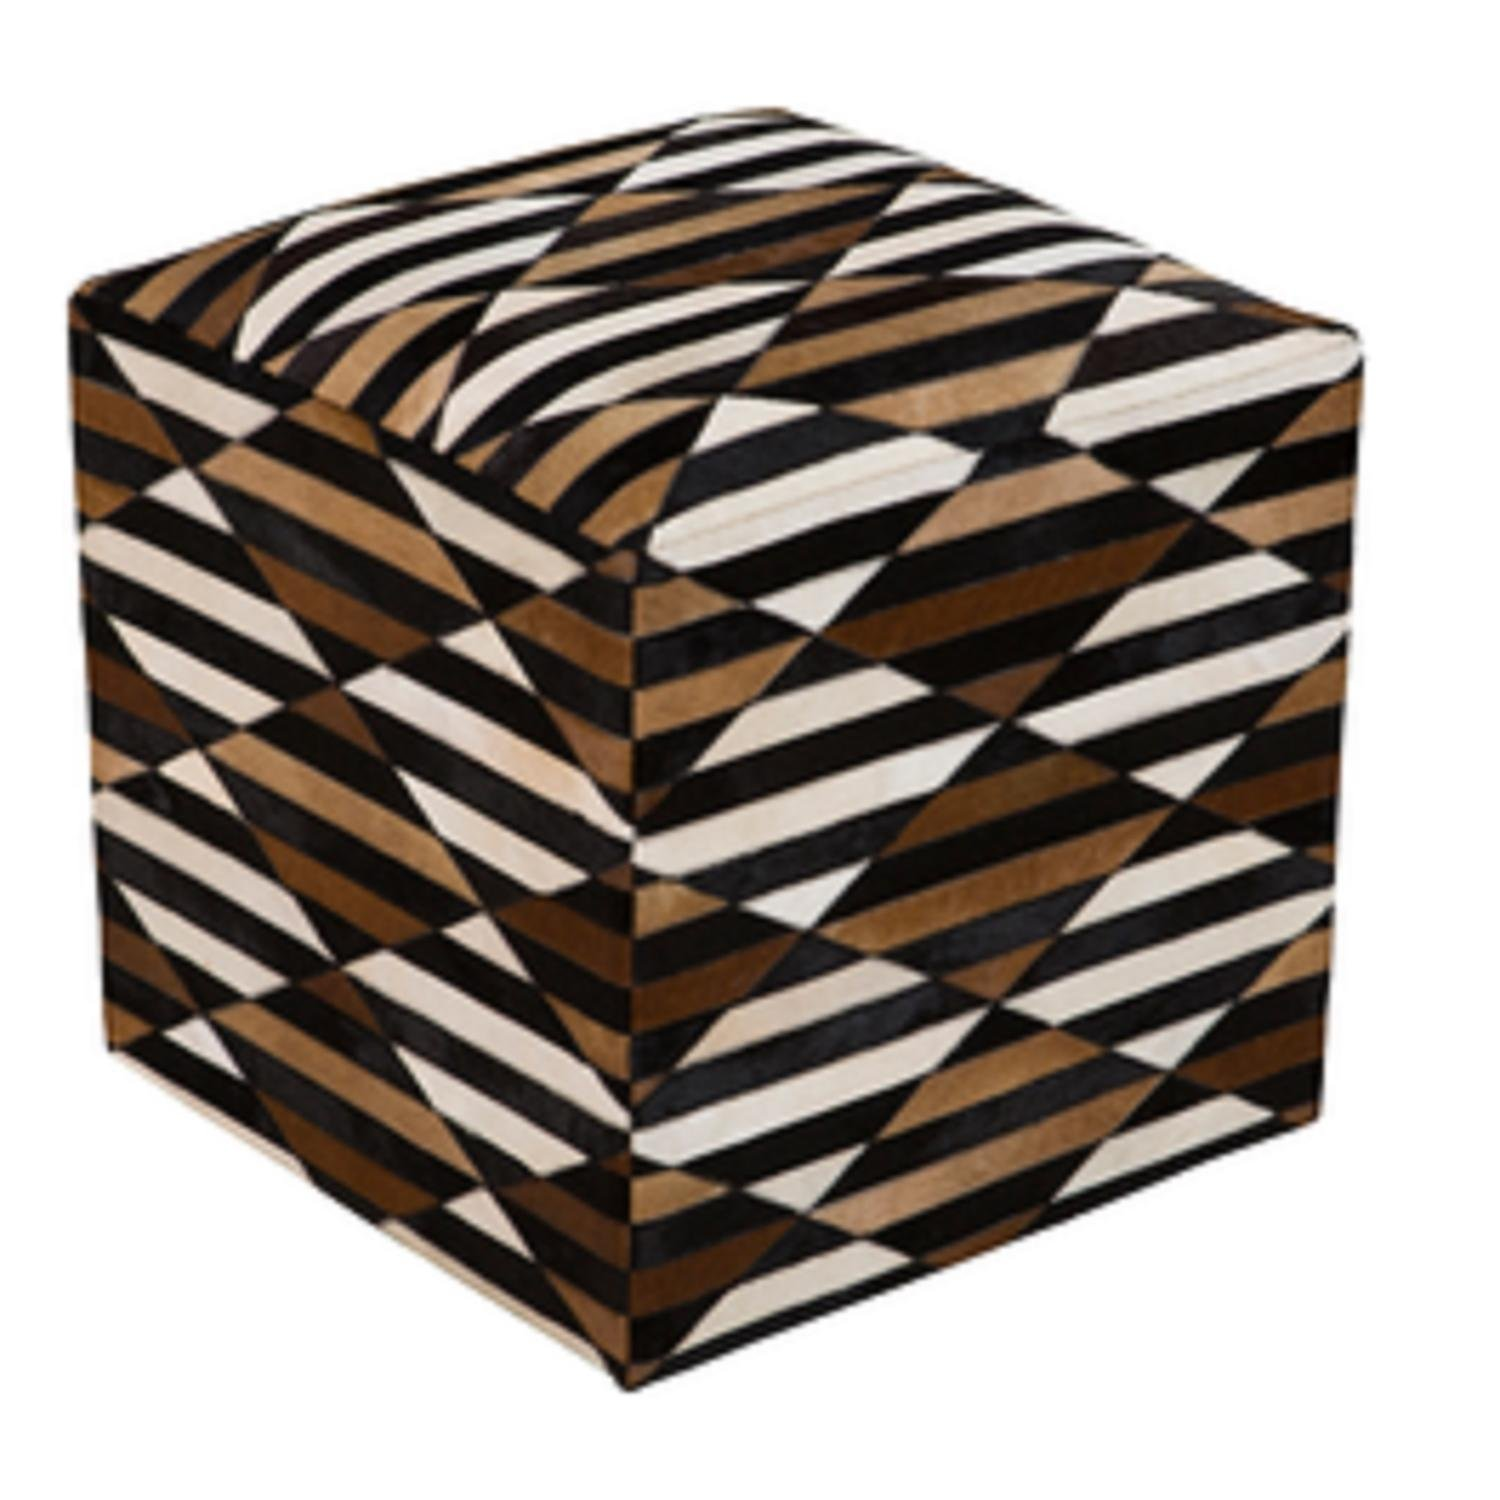 18'' Black, Chocolate Brown and Ivory Striped Leather Square Pouf Ottoman